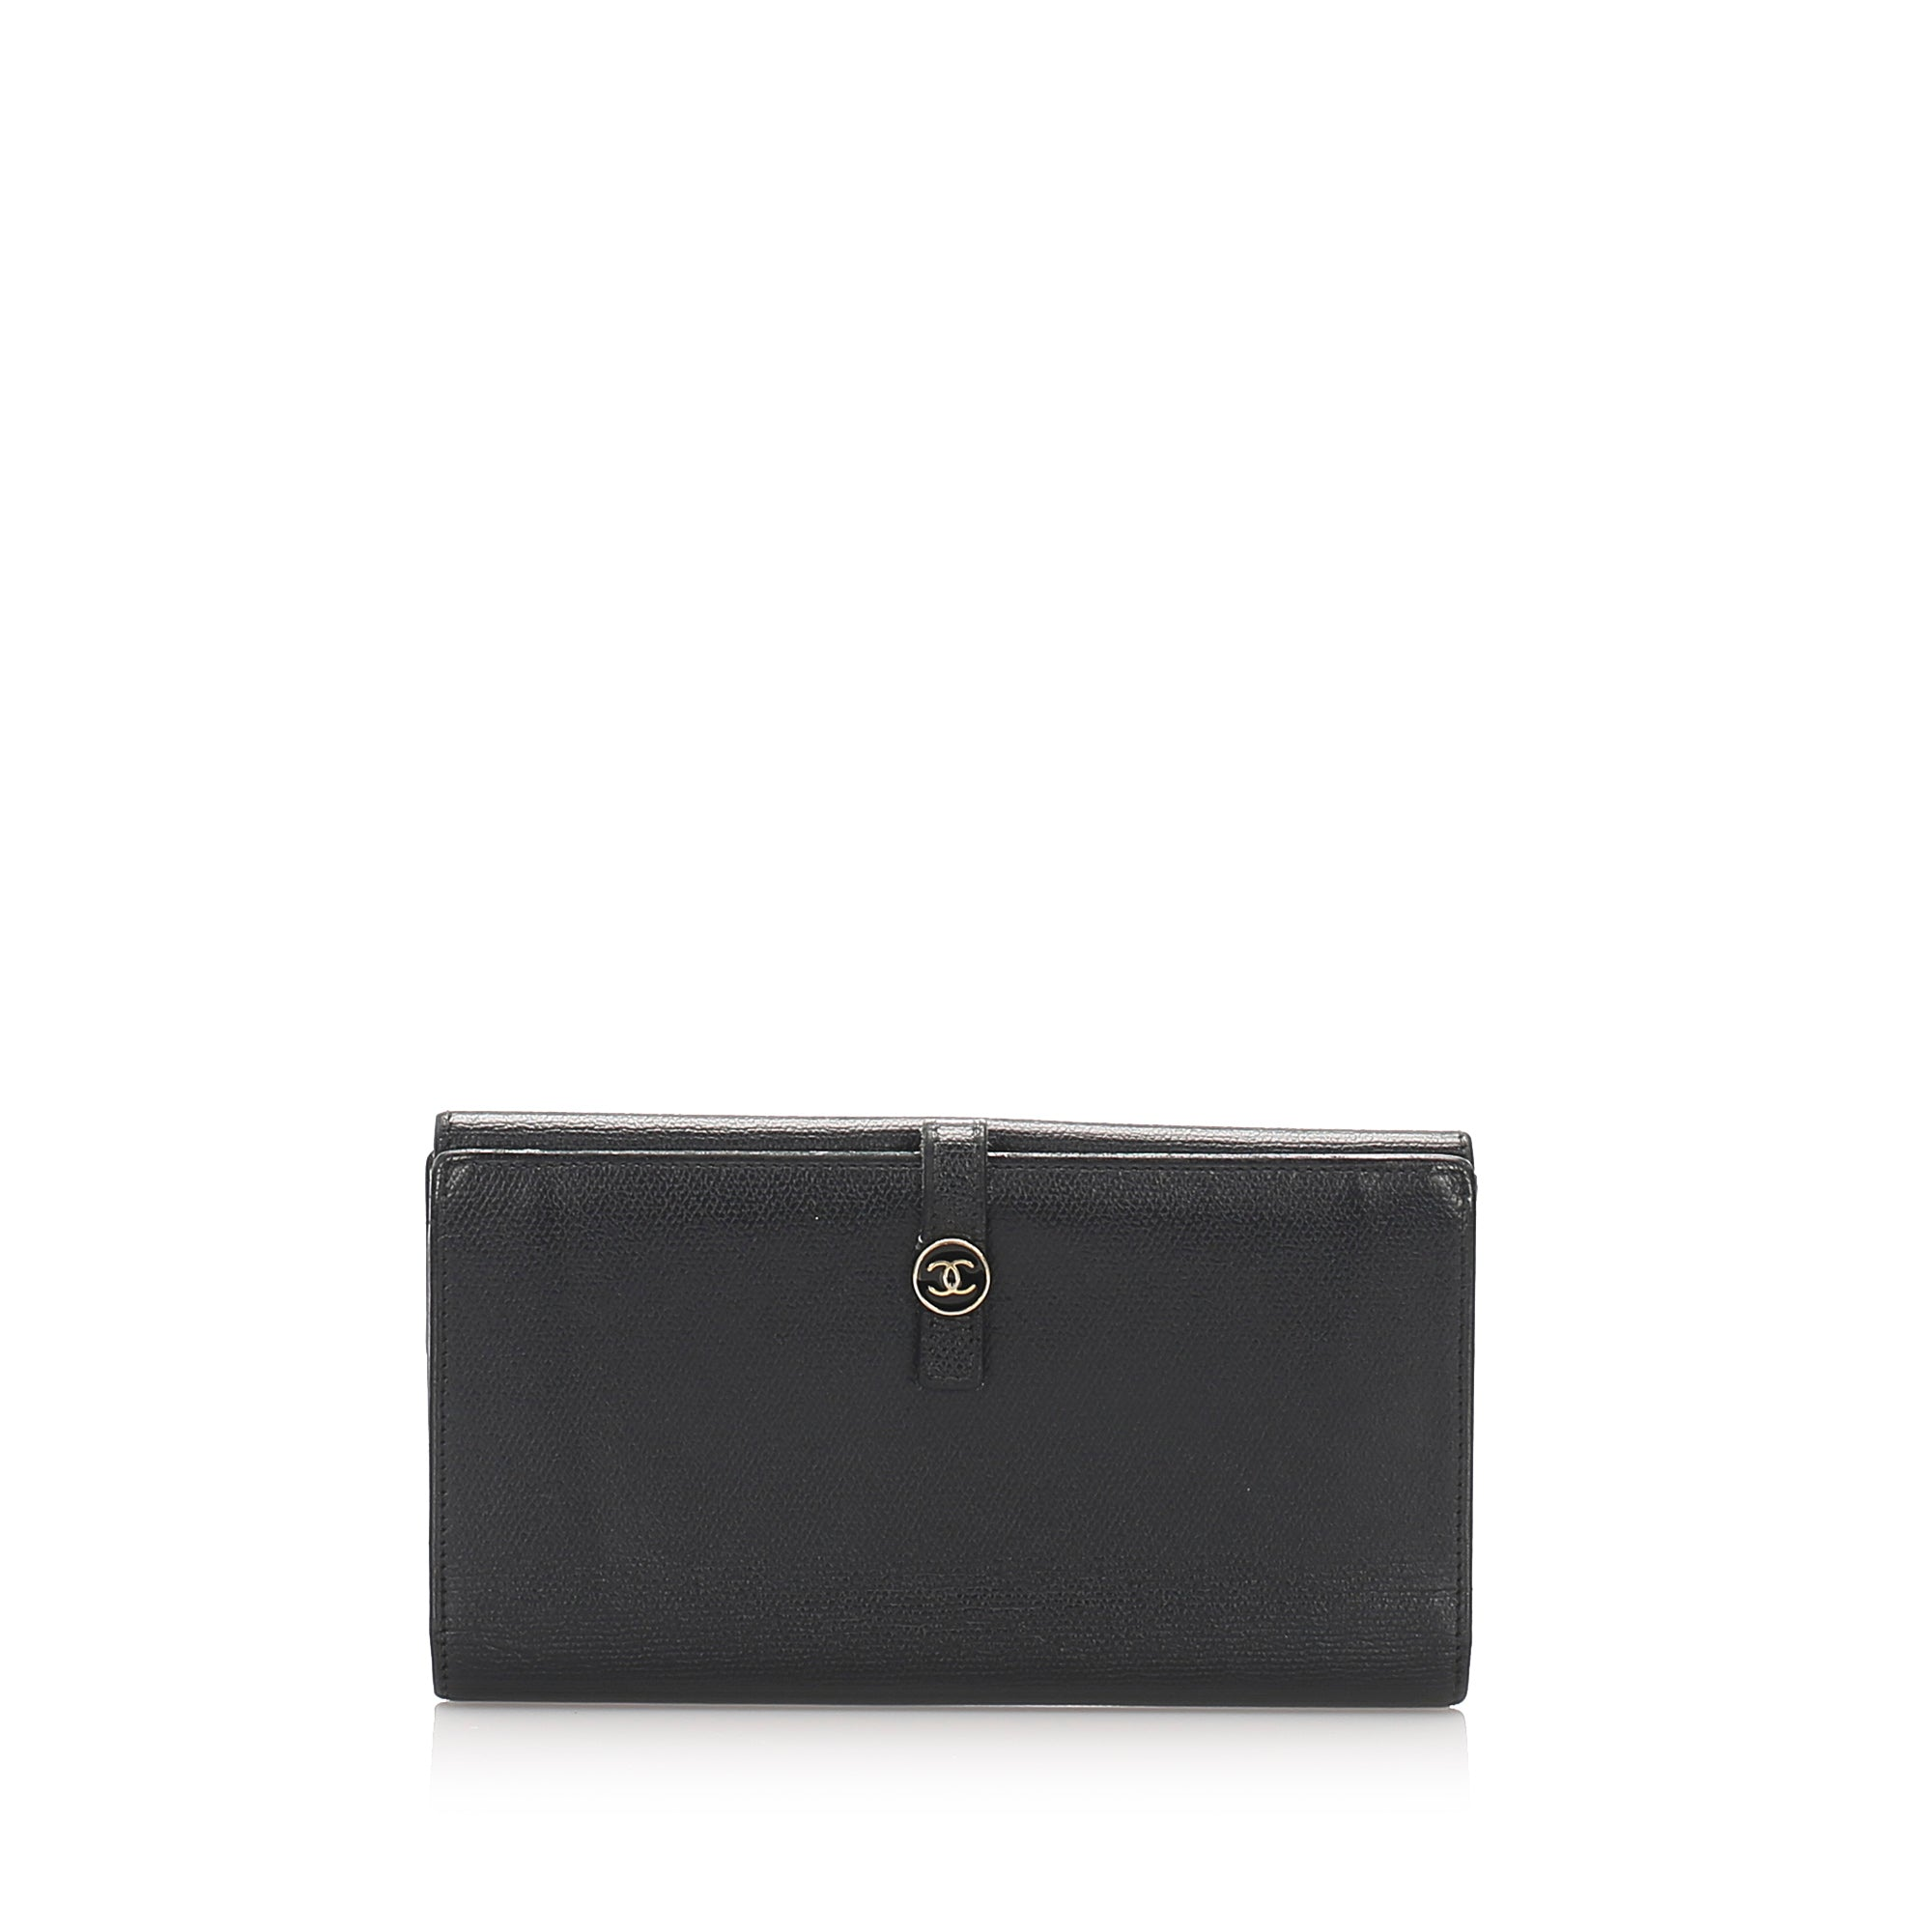 Chanel CC Leather Long Wallet - Olive Street